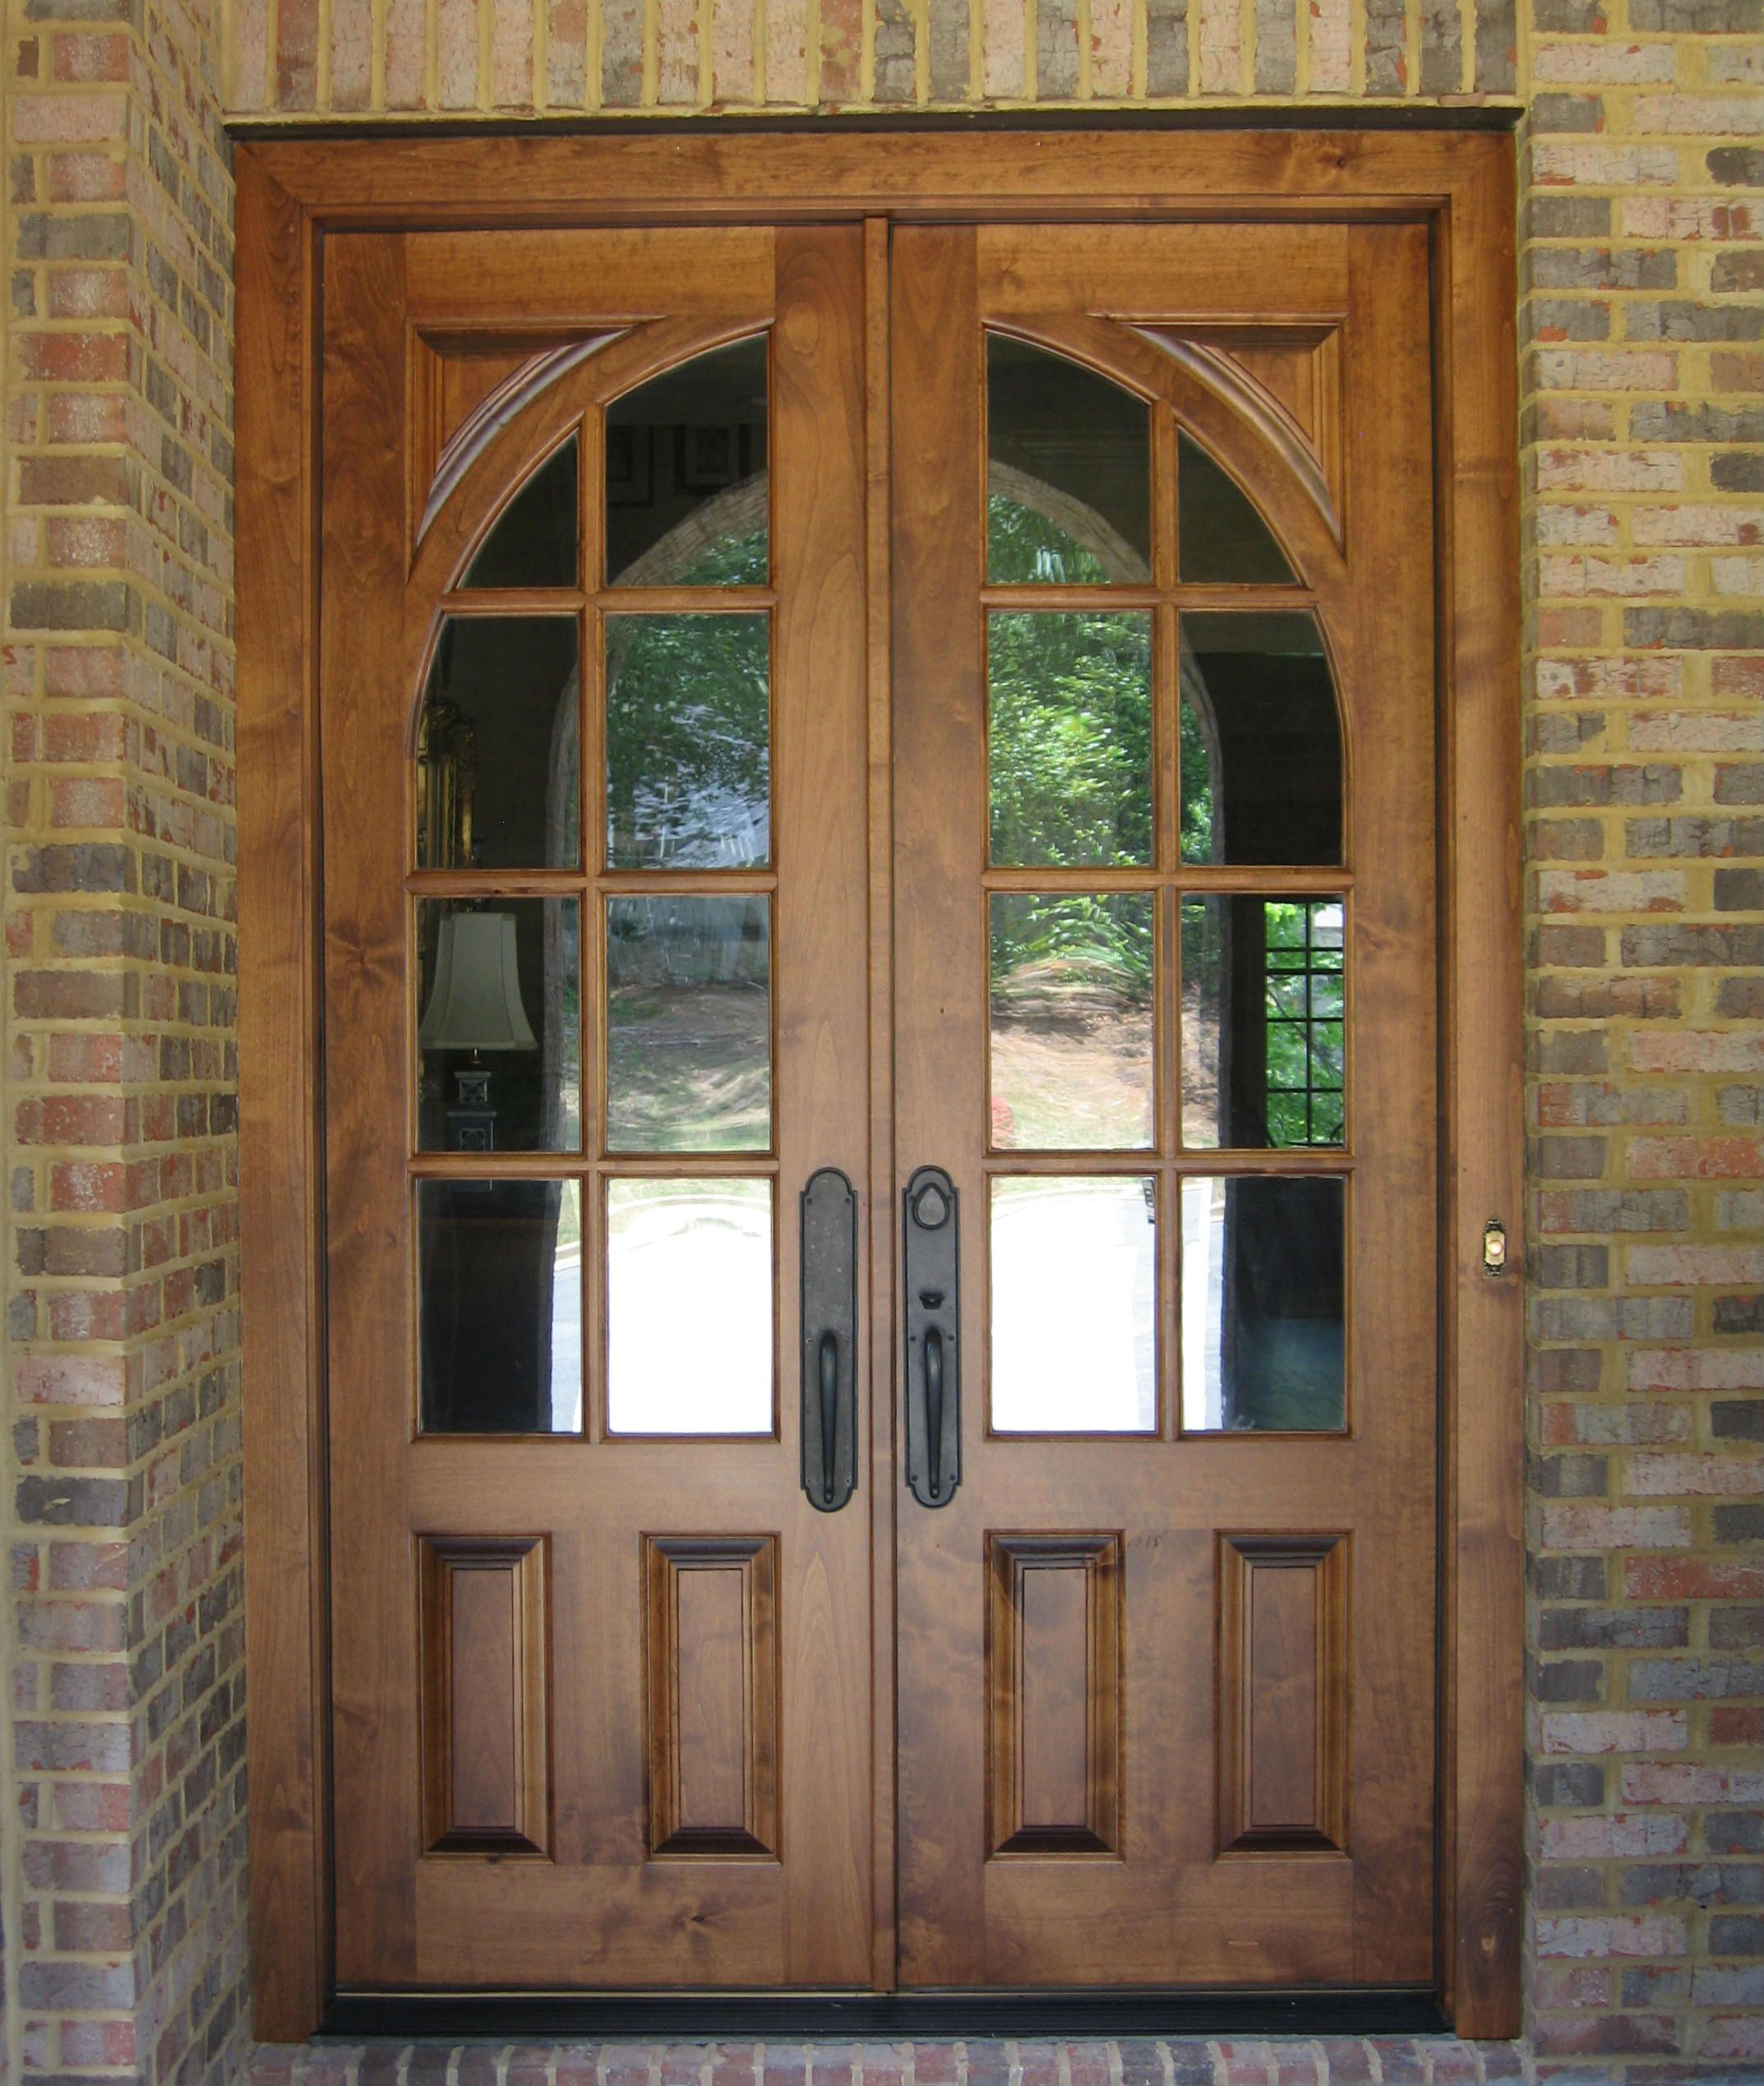 Round top front door window inserts - I Want These Doors For My House Country French Exterior Wood Entry Door